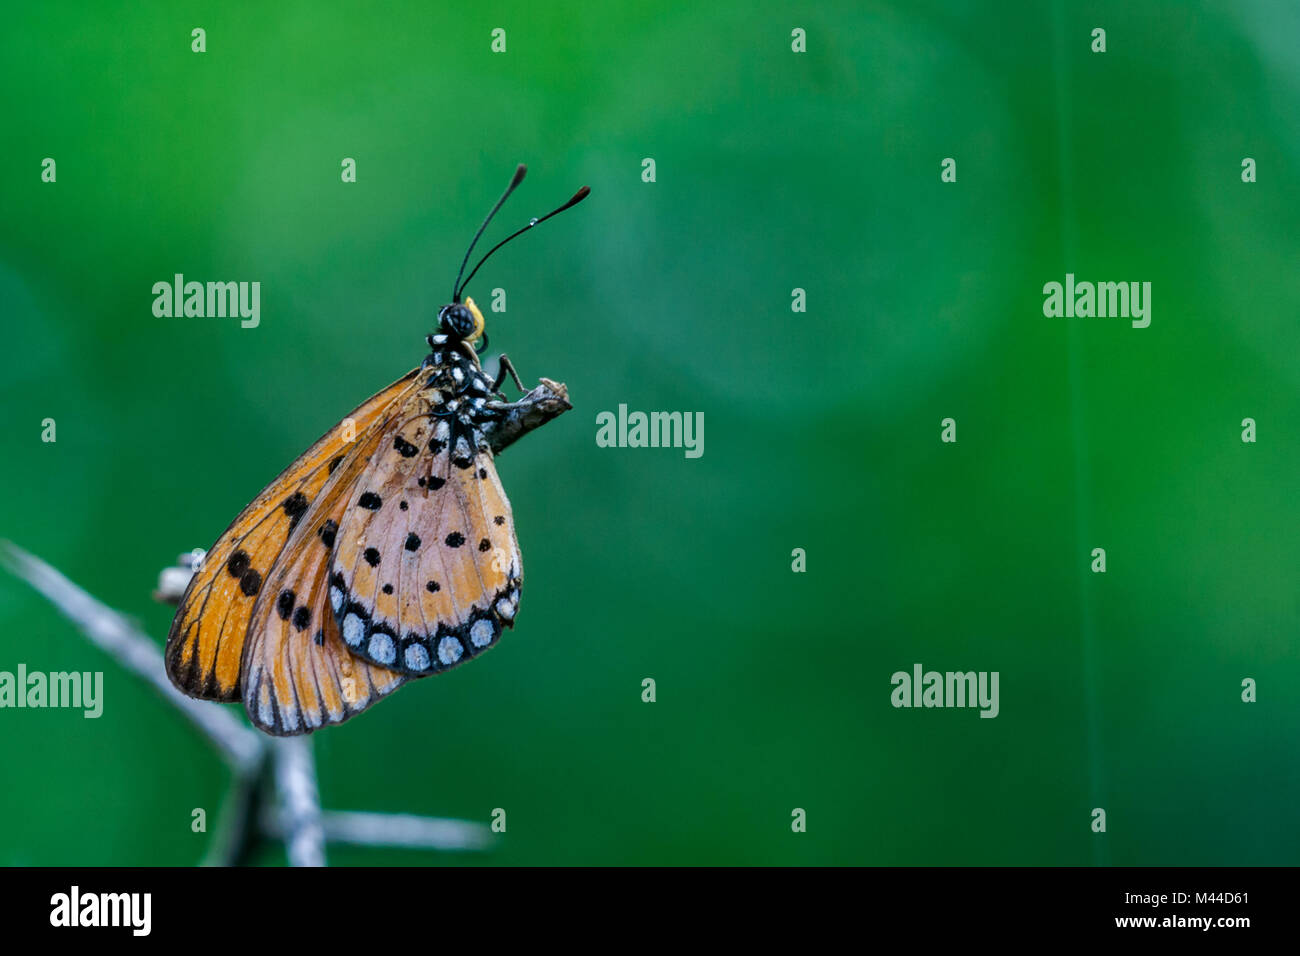 the tawny coster butterfly (Acraea terpsicore) in Nanmangalam reserved forest, Chennai, Tamilnadu, India - Stock Image